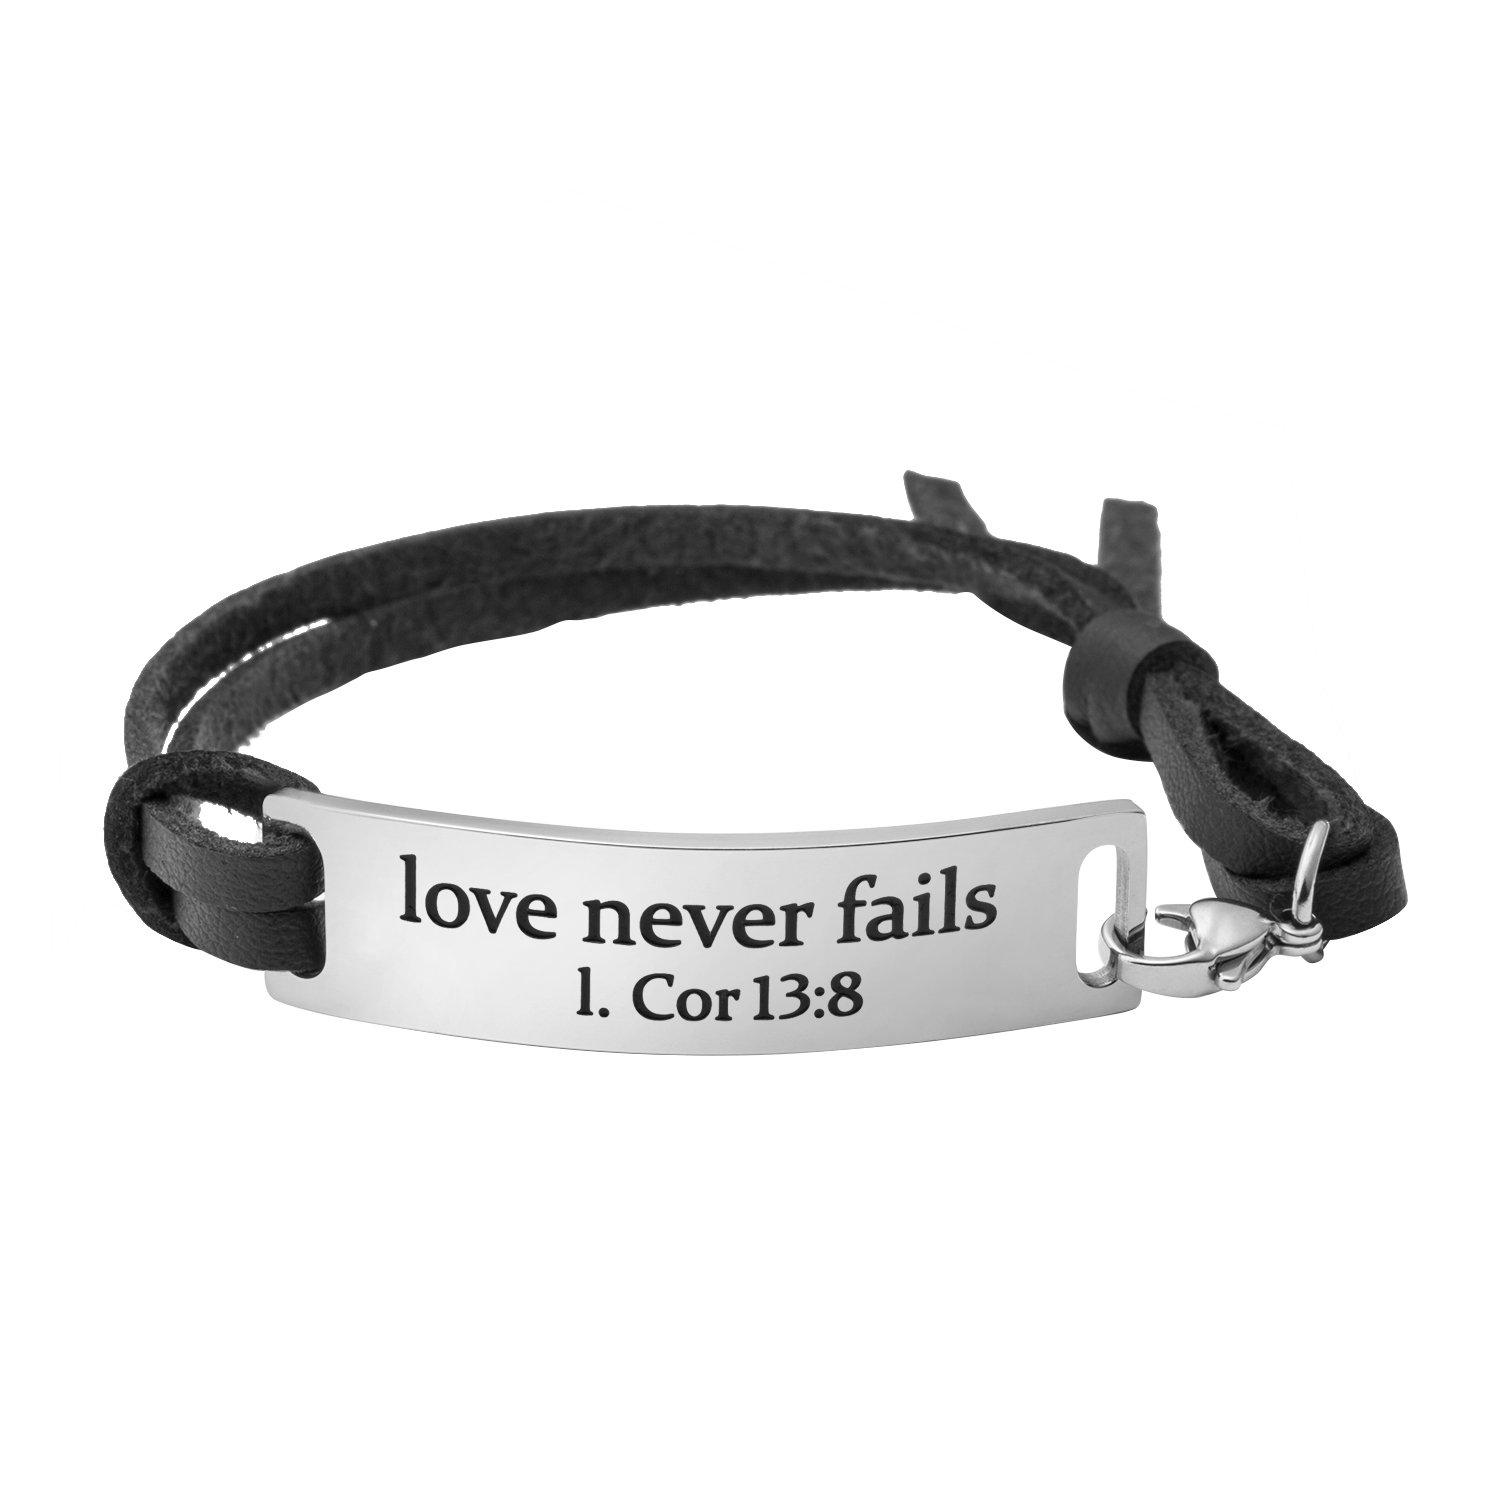 Yiyang Christian Bracelet for Wife Bible Engraved Jewelry Inspirational Mantra Quotes Love Never Fails Black